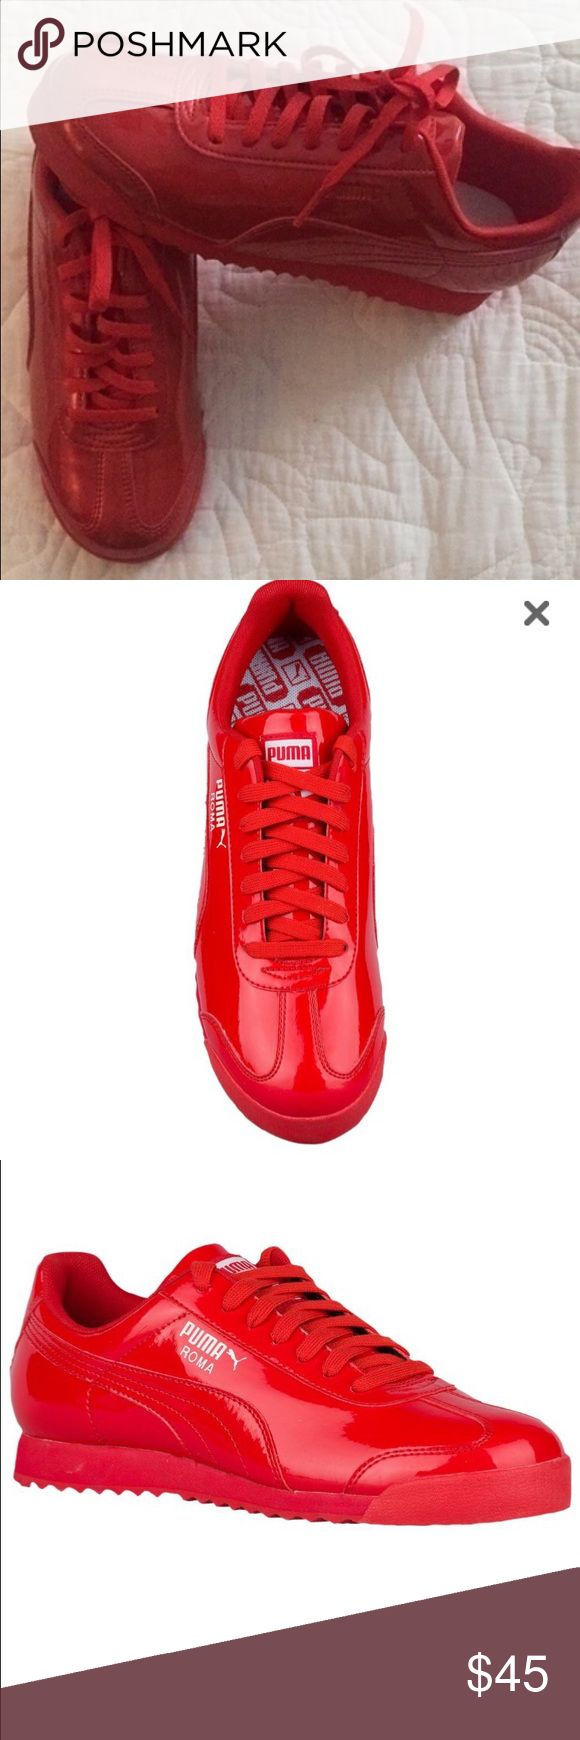 Red Puma Roma's (Sneakers) Size: 6.5 (Boys) Very comfy! Brand new, never worn. If you like out of the box sneakers, try these! Lovely color. #sneakers #puma #pumaroma #roma #fashion #red ❤️❤️❤️ Puma Shoes Sneakers